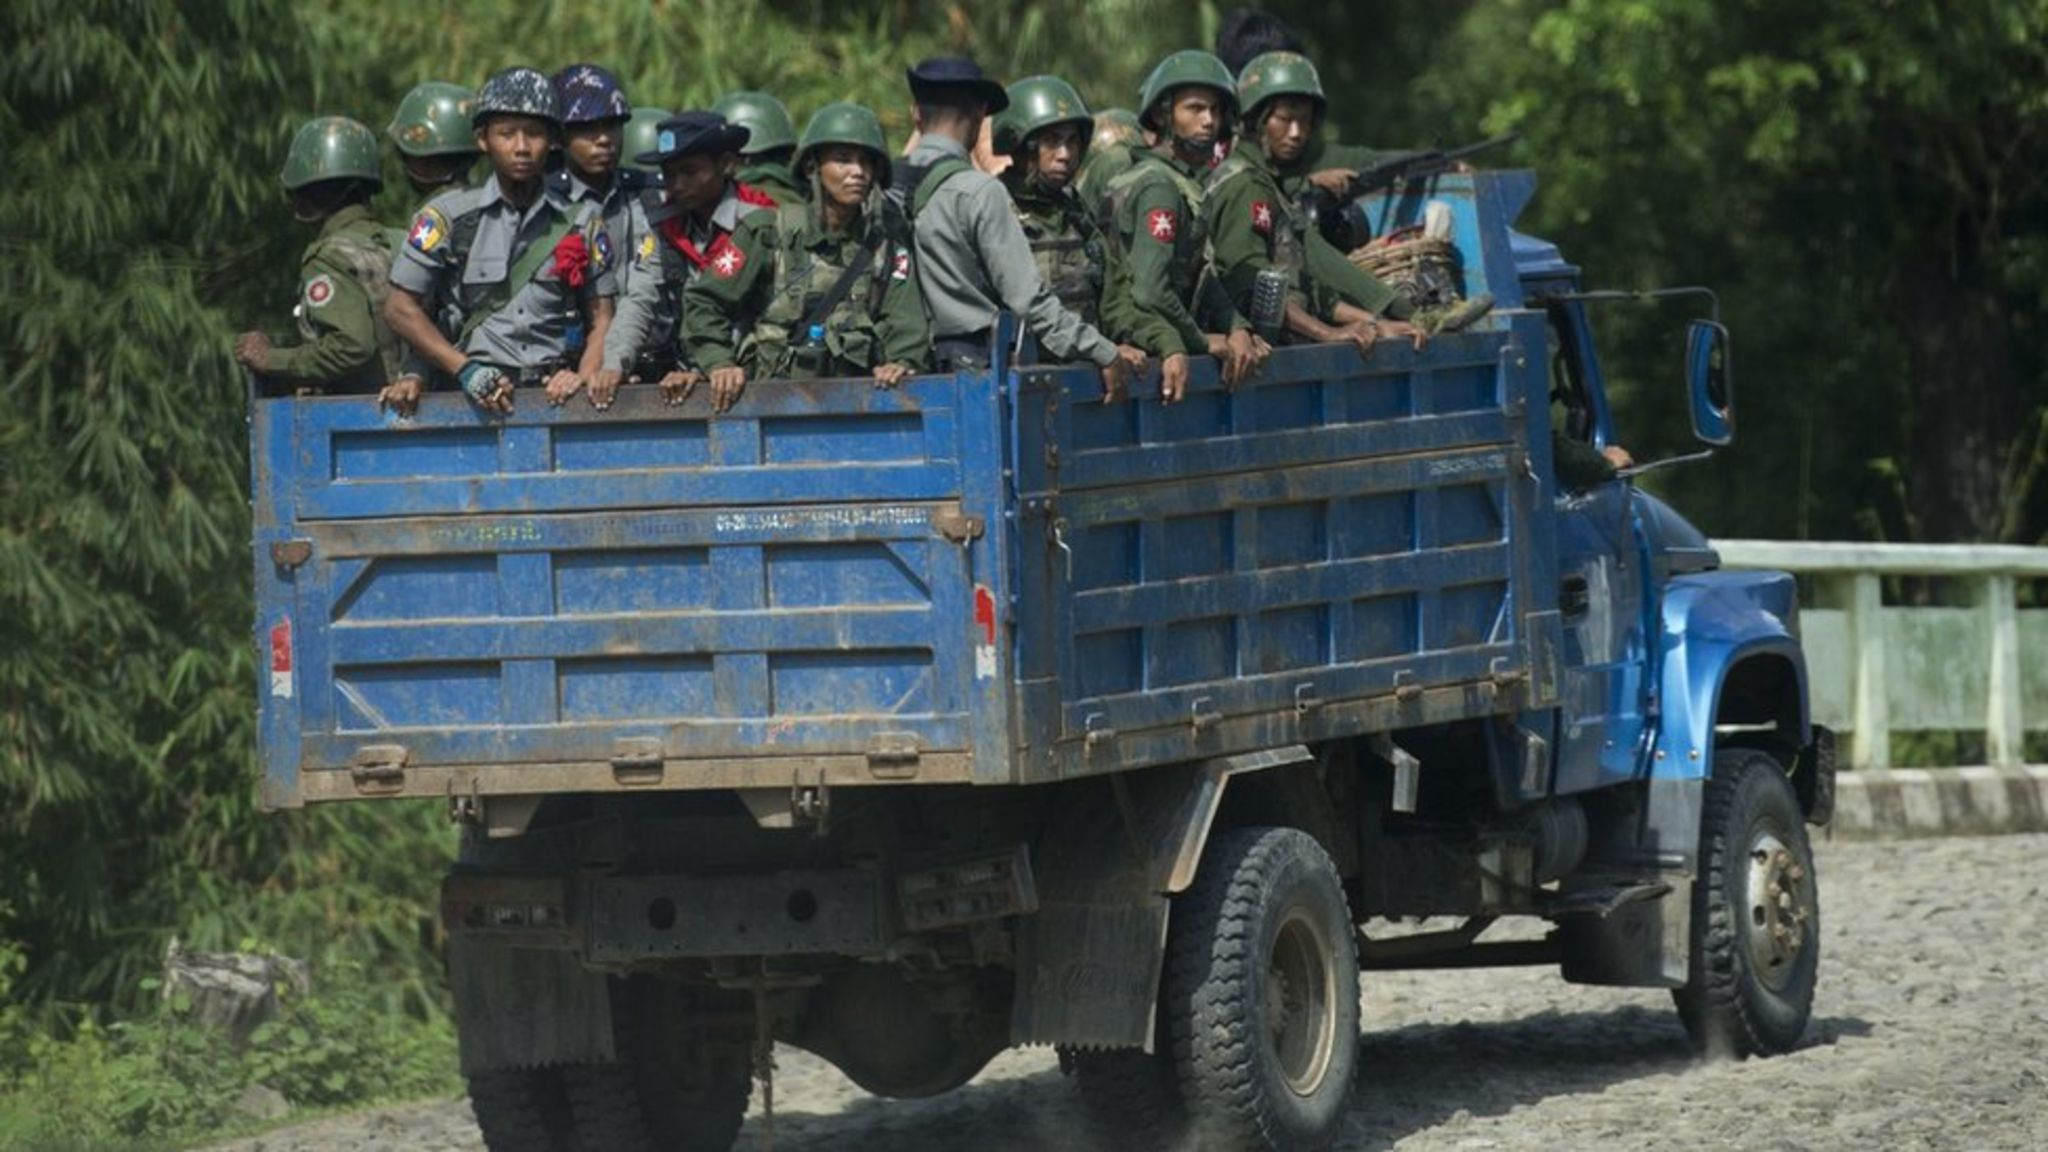 File image taken on 14 October 2016 shows armed military troops and police travelling in trucks through Rakhine State, Myanmar